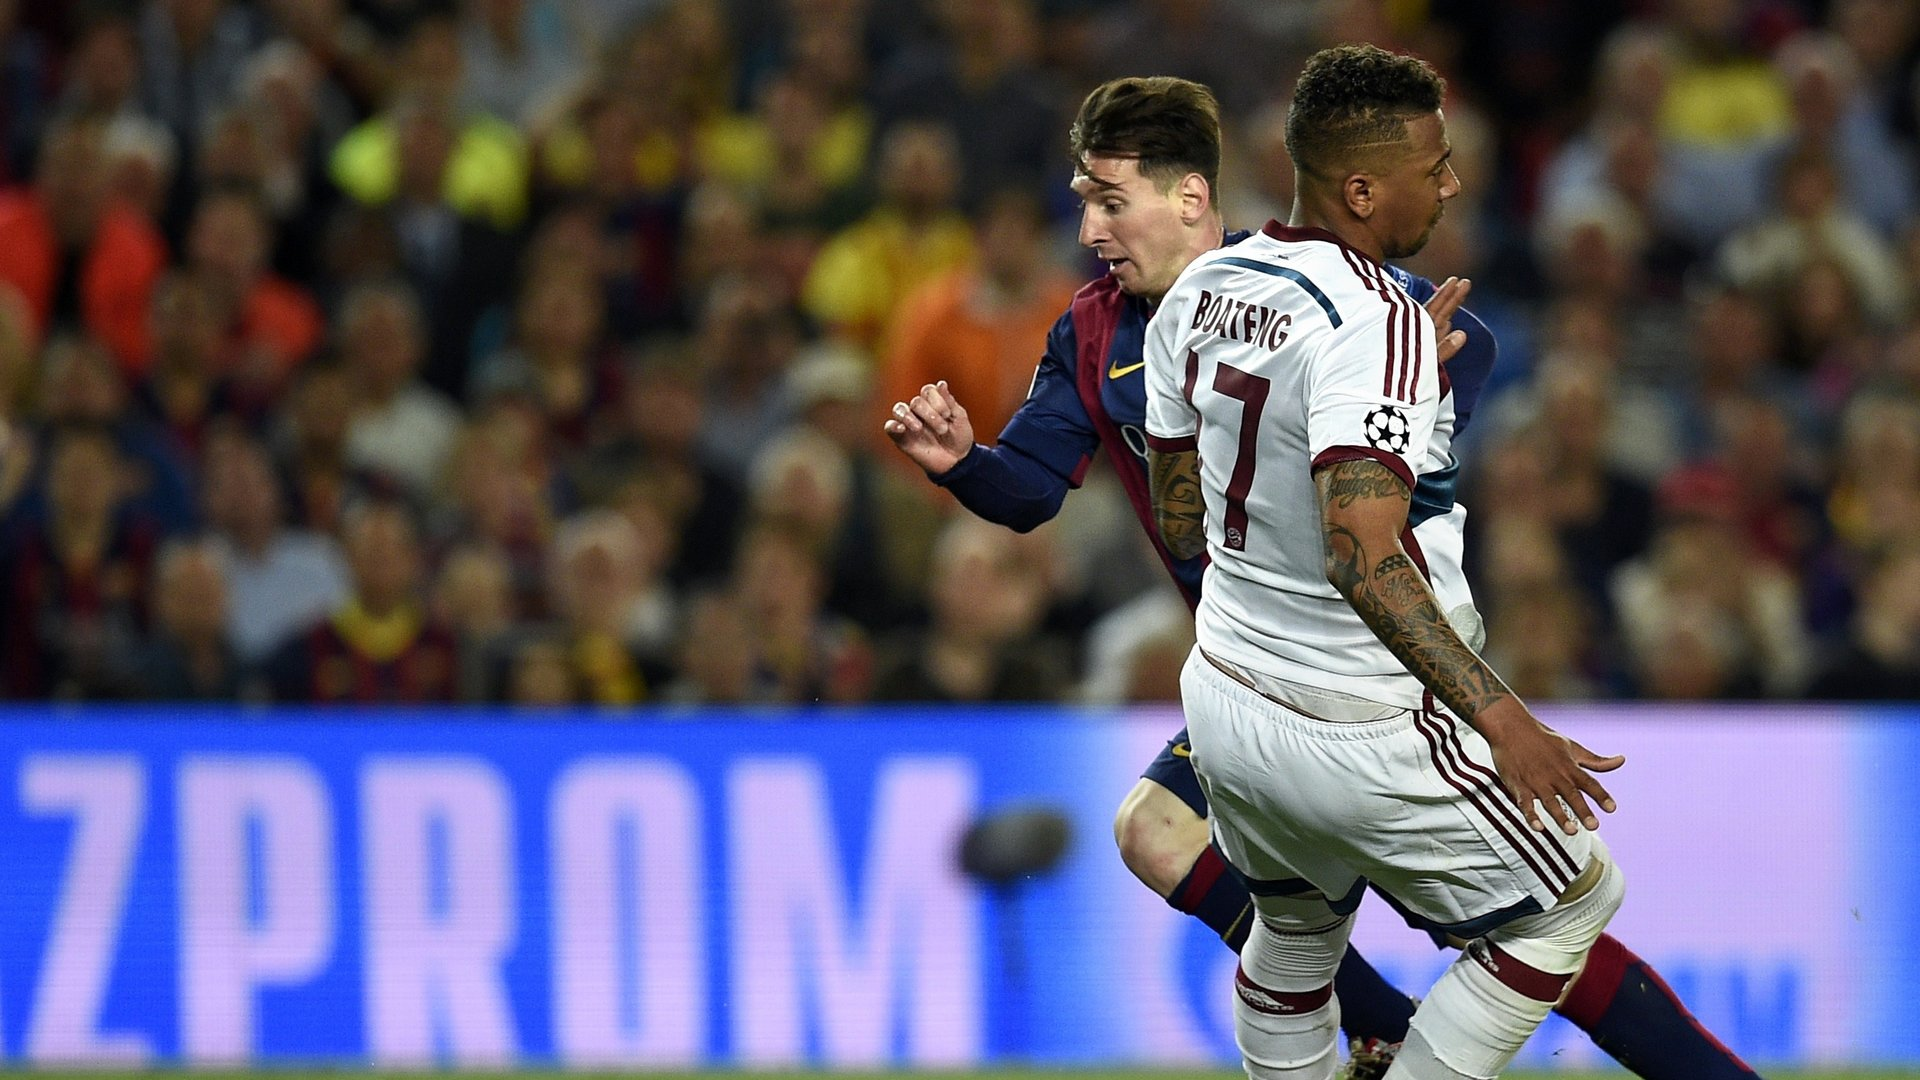 Barcelona's Argentinian forward Lionel Messi (L) vies with Bayern Munich's defender Jerome Boateng (R) during the UEFA Champions League football match FC Barcelona vs FC Bayern Muenchen at the Camp Nou stadium in Barcelona on May 6, 2015. AFP PHOTO/ LLUIS GENE (Photo credit should read LLUIS GENE/AFP/Getty Images)